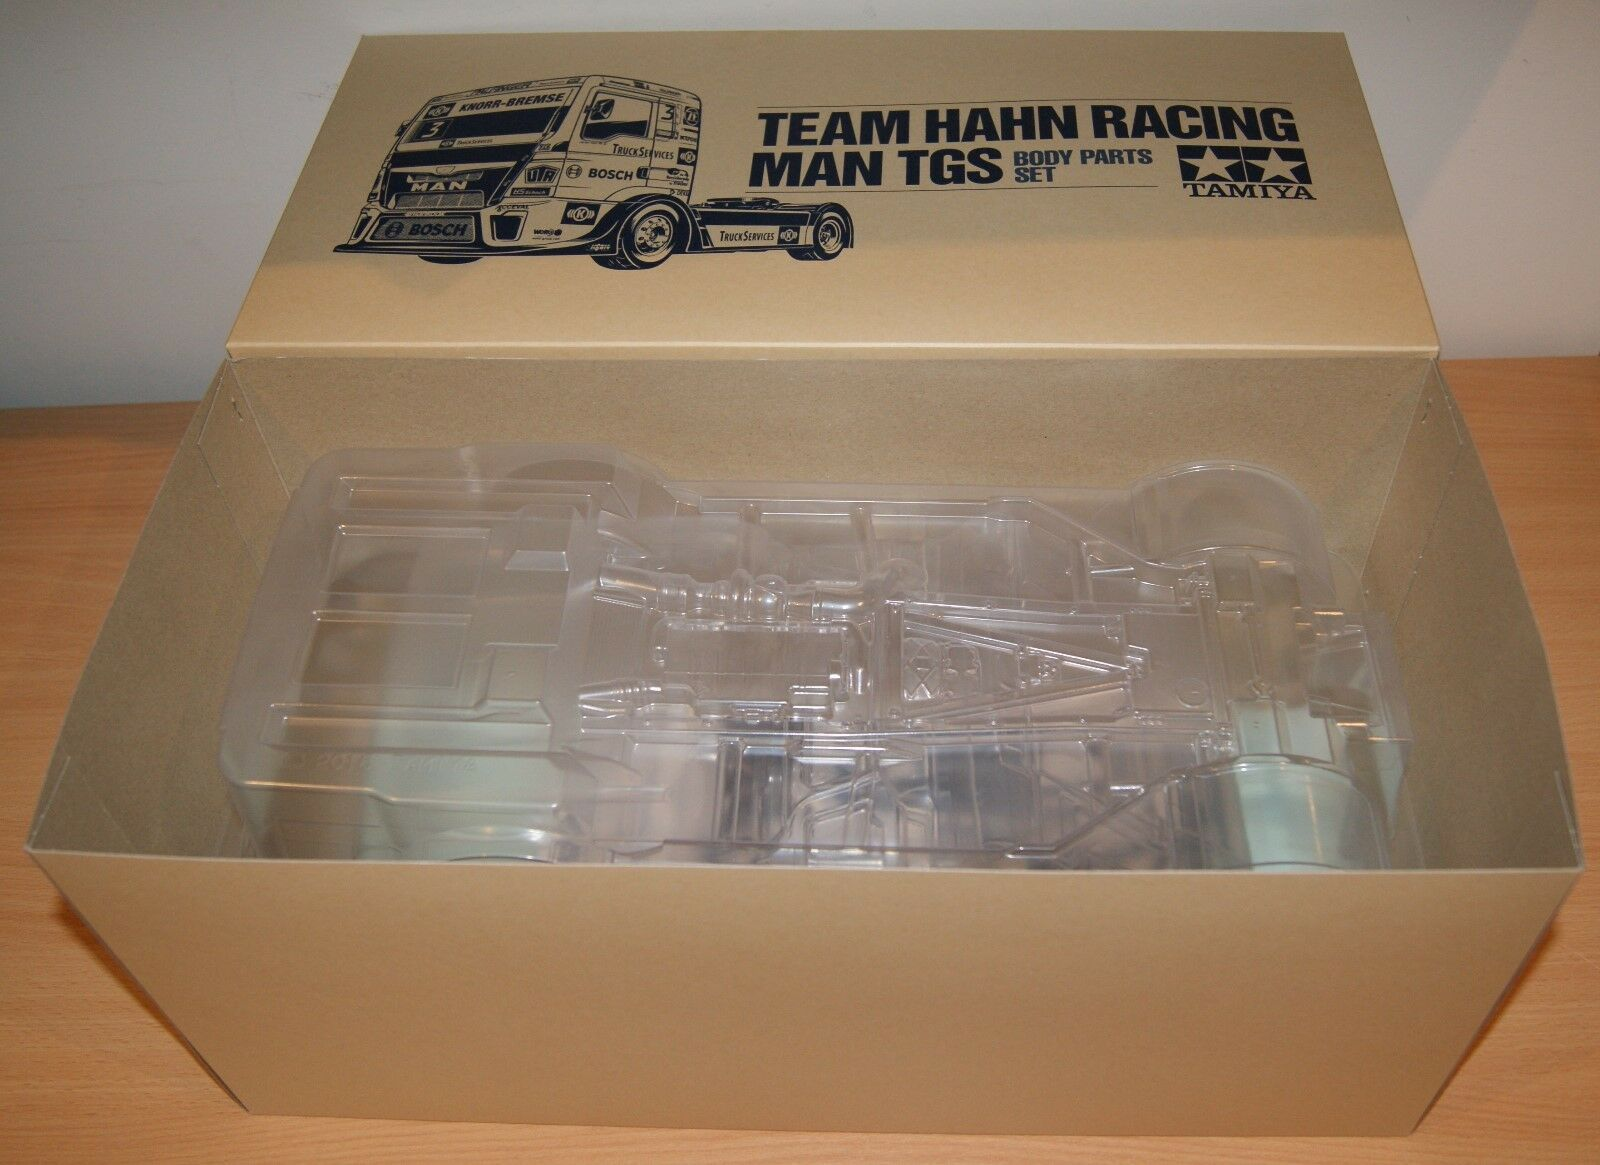 Tamiya 51606 Team Hahn Racing Man TGS Body Parts Set (TT01 TT01E TT02), NIP